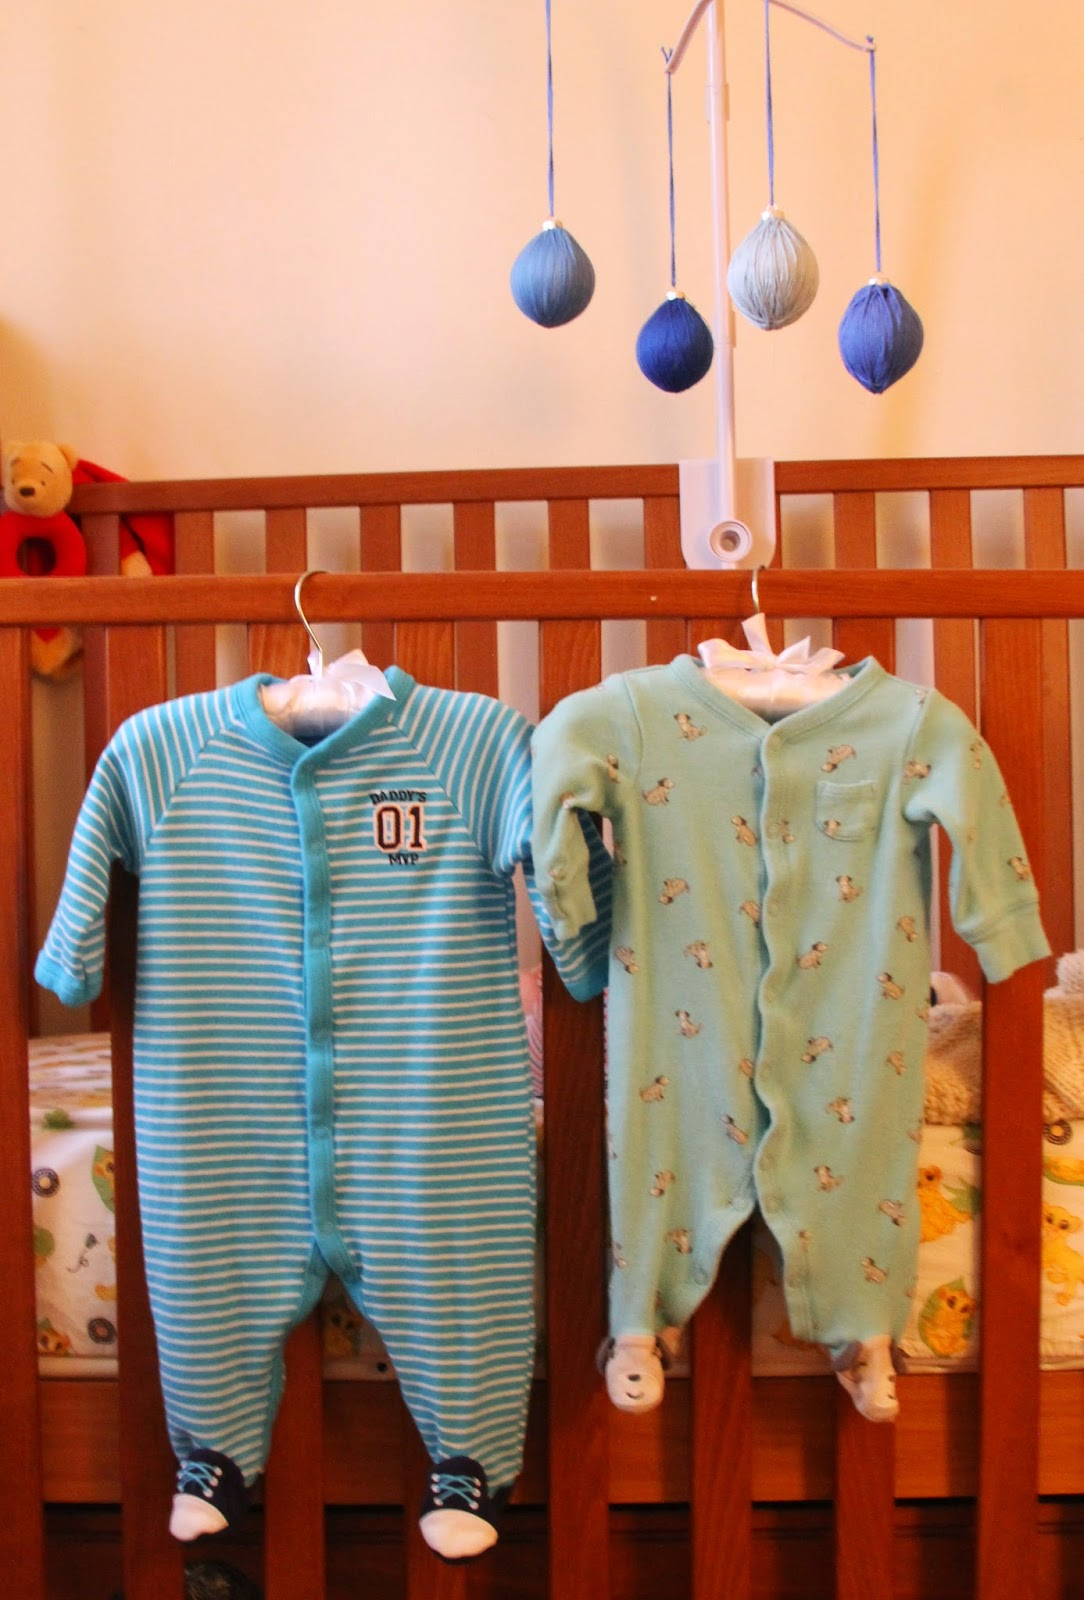 Carters Clothing Review